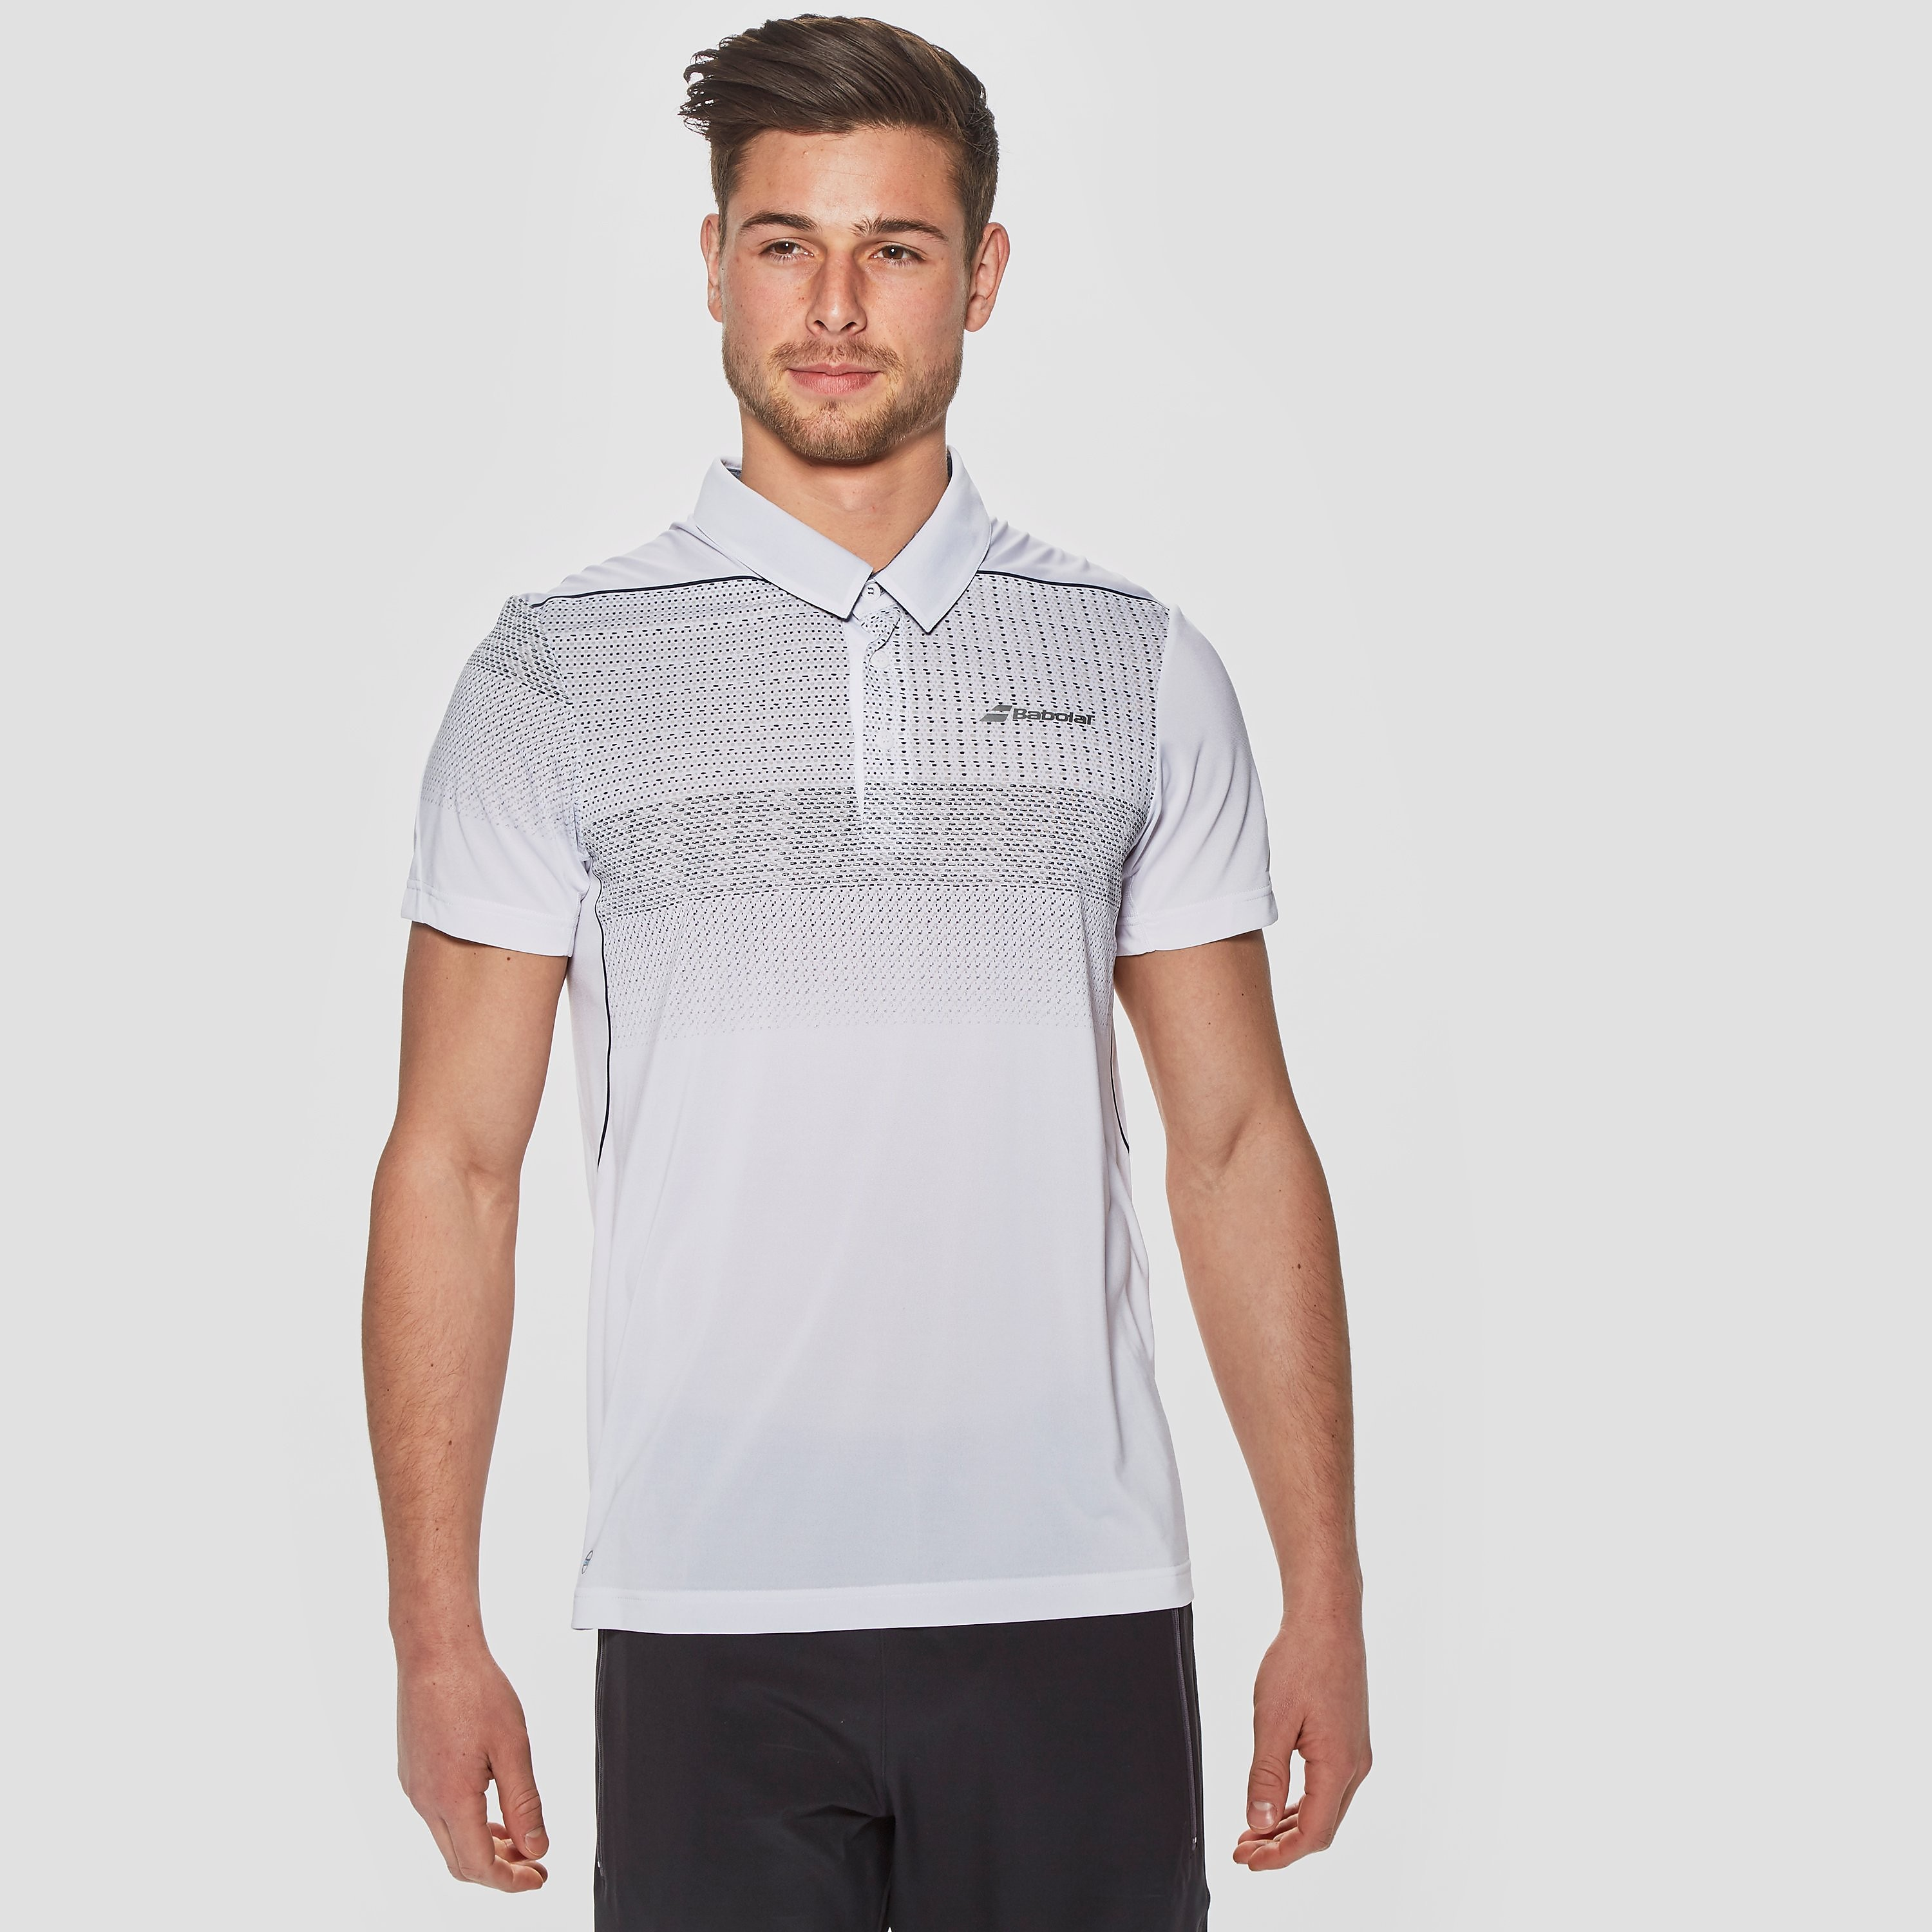 Babolat Performance Men's Tennis Polo Top